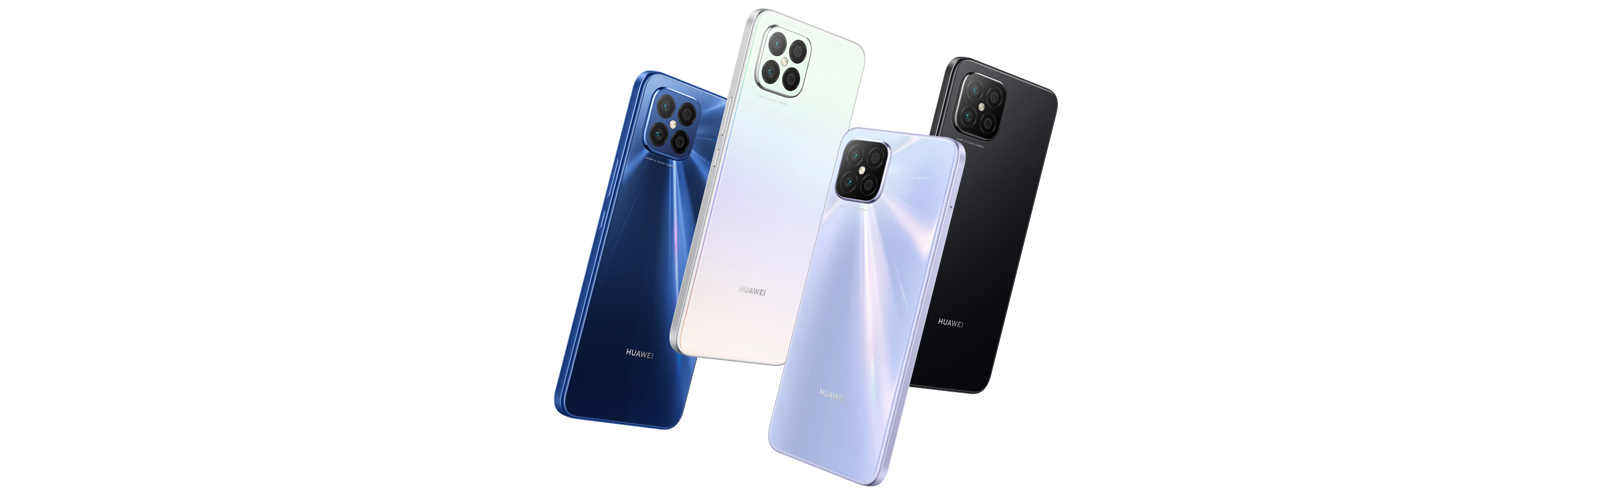 Huawei Nova 8 SE 5G is official - specifications and prices